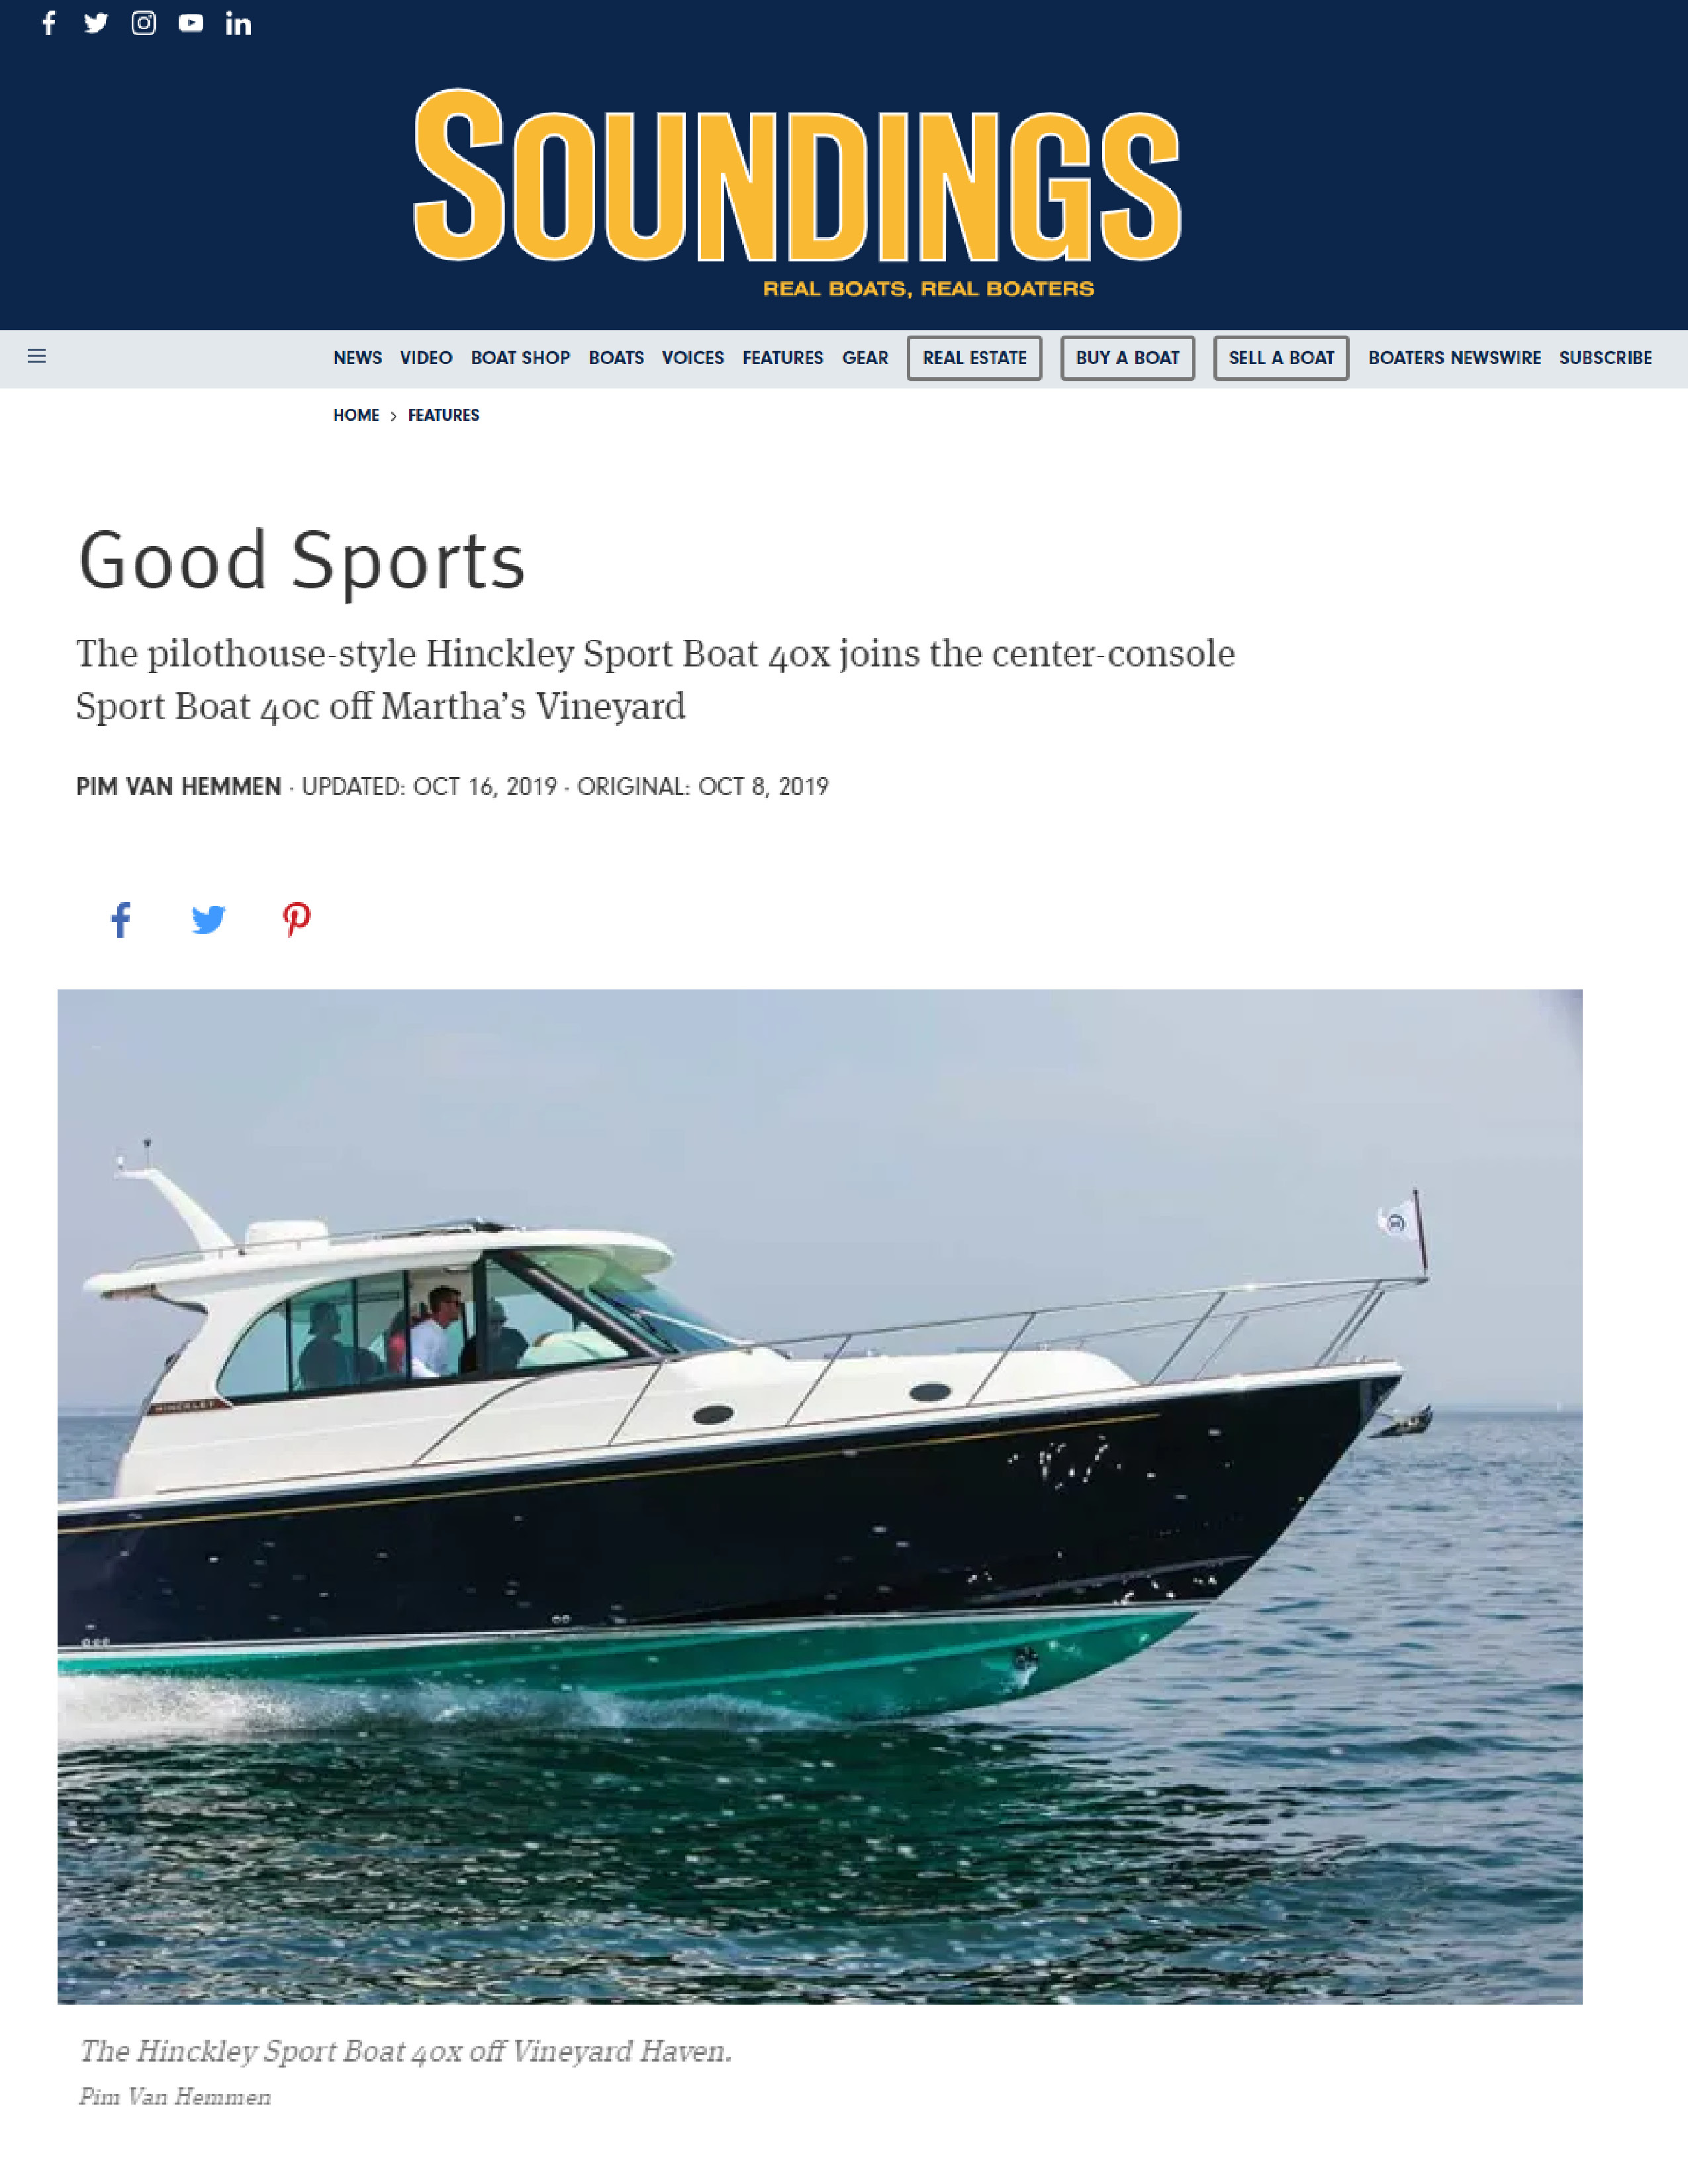 Hinckley Sport Boats featured in Soundings